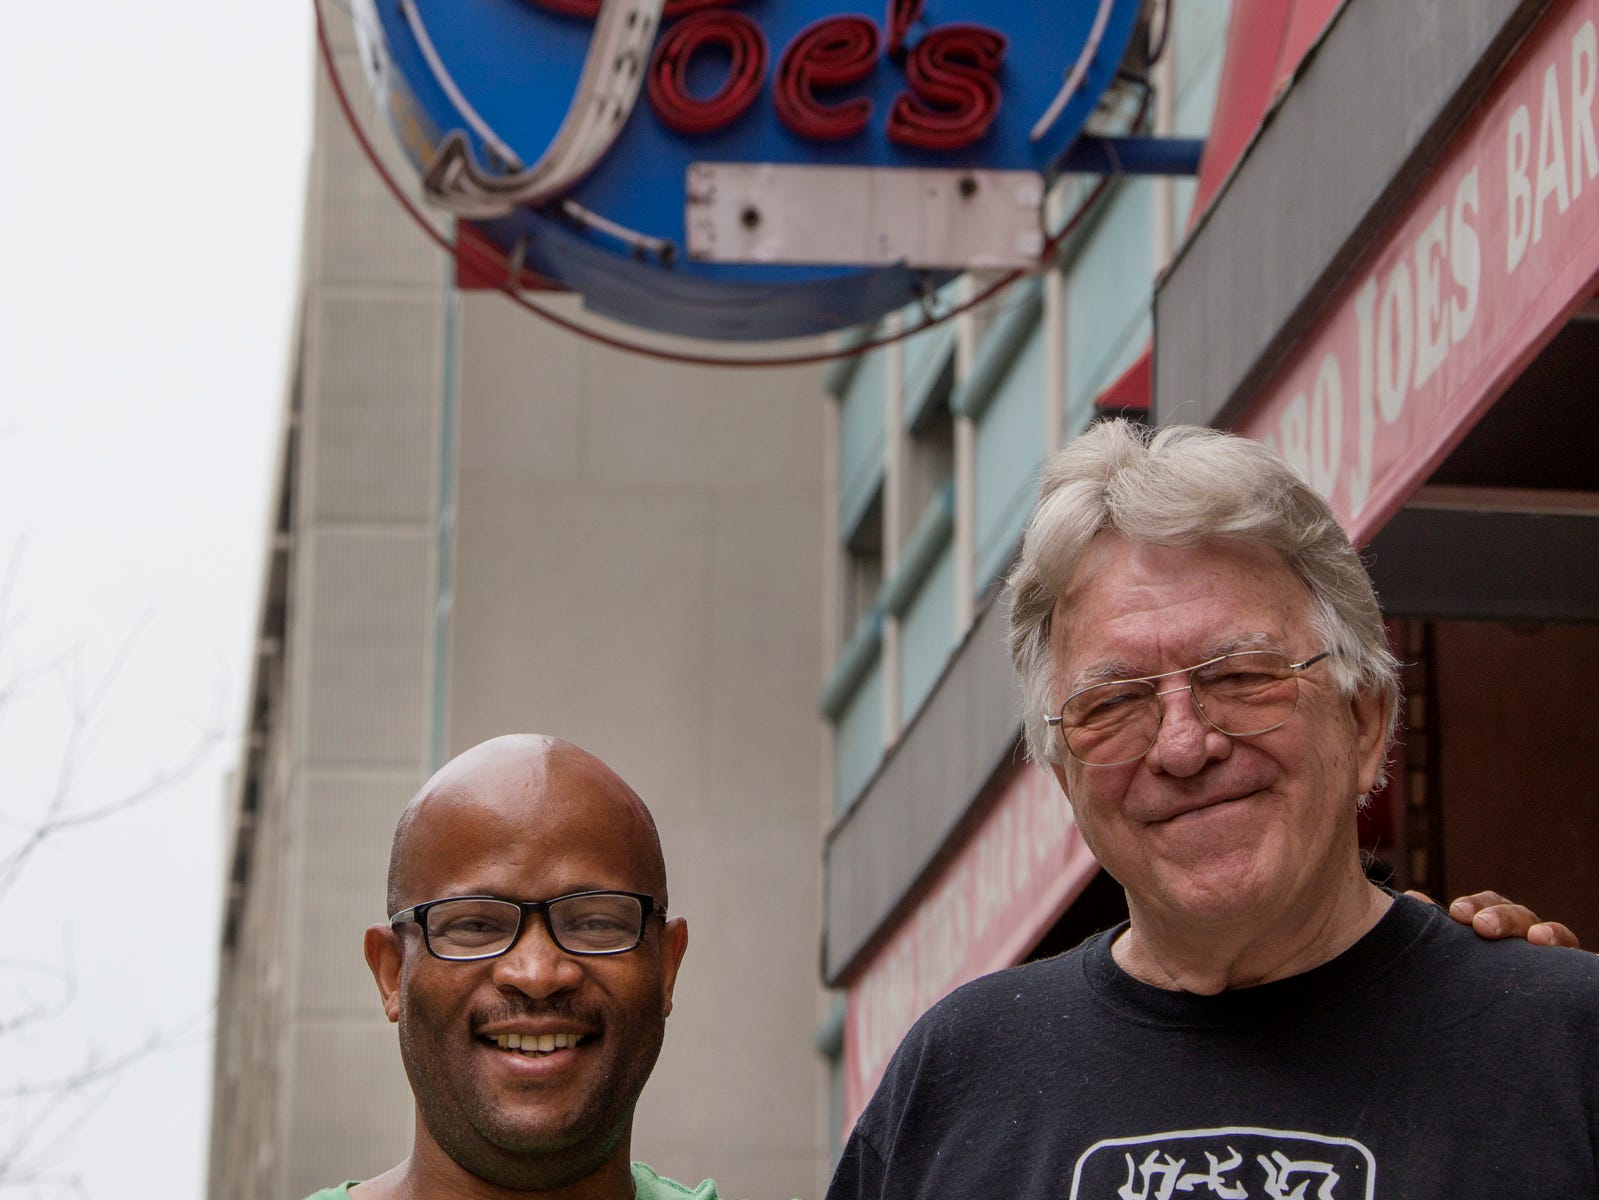 Cobo Joe's co-owners Delroy Thomas, 49, left, and Richard Cadreau, 71, pose for a portrait outside of the sports bar before closing the doors on Tuesday, July 31, 2018.